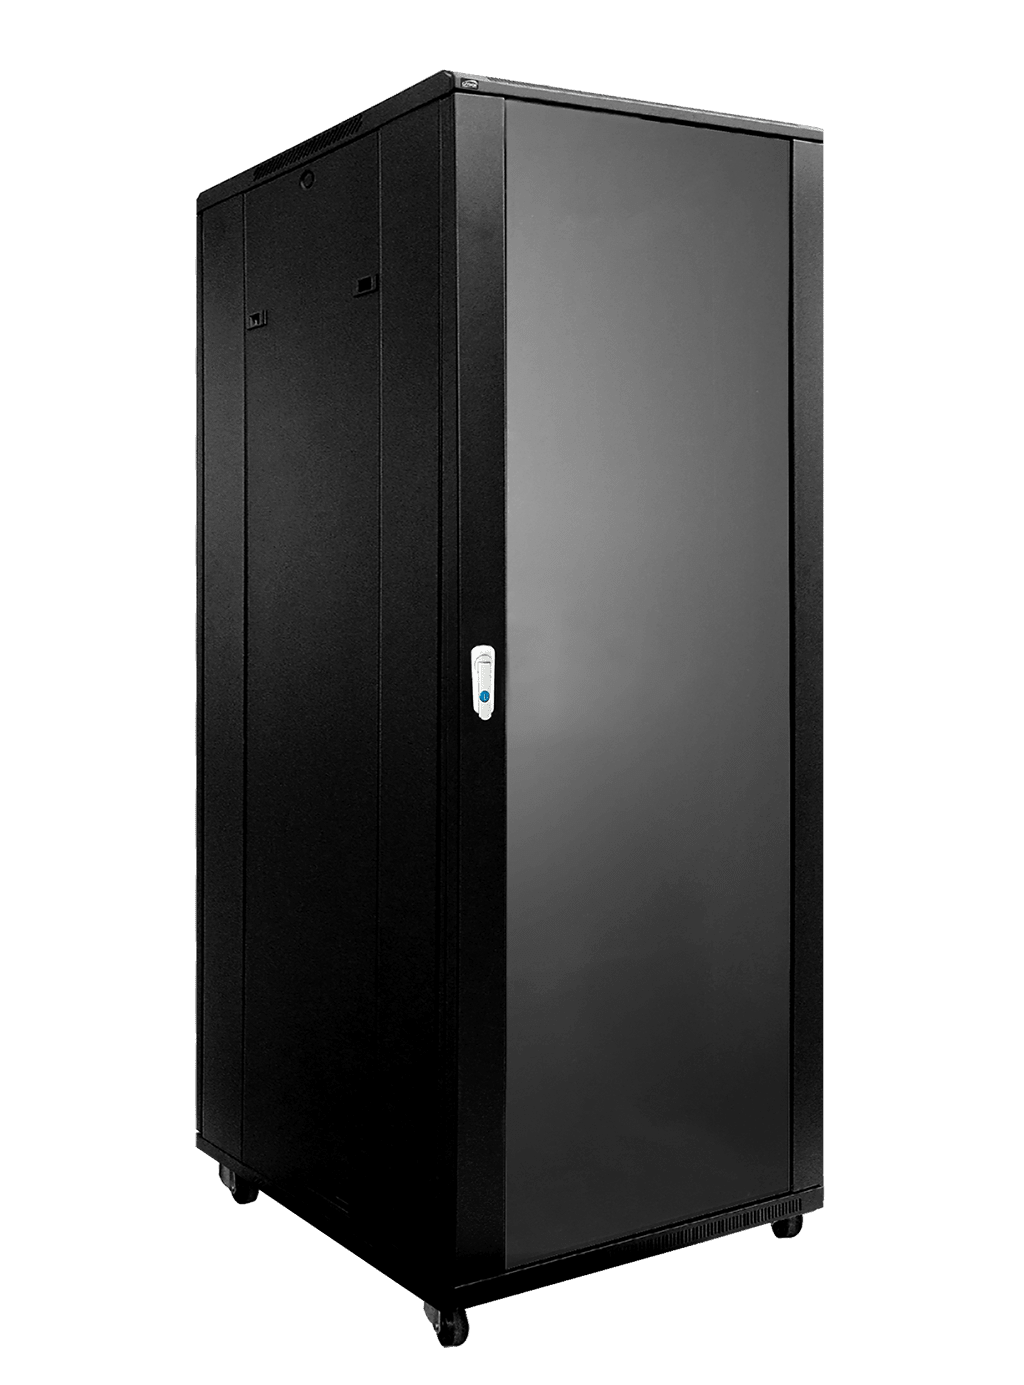 "SPR832 - 19"" rack cabinet - 32 units - 600mm W x 800mm D"